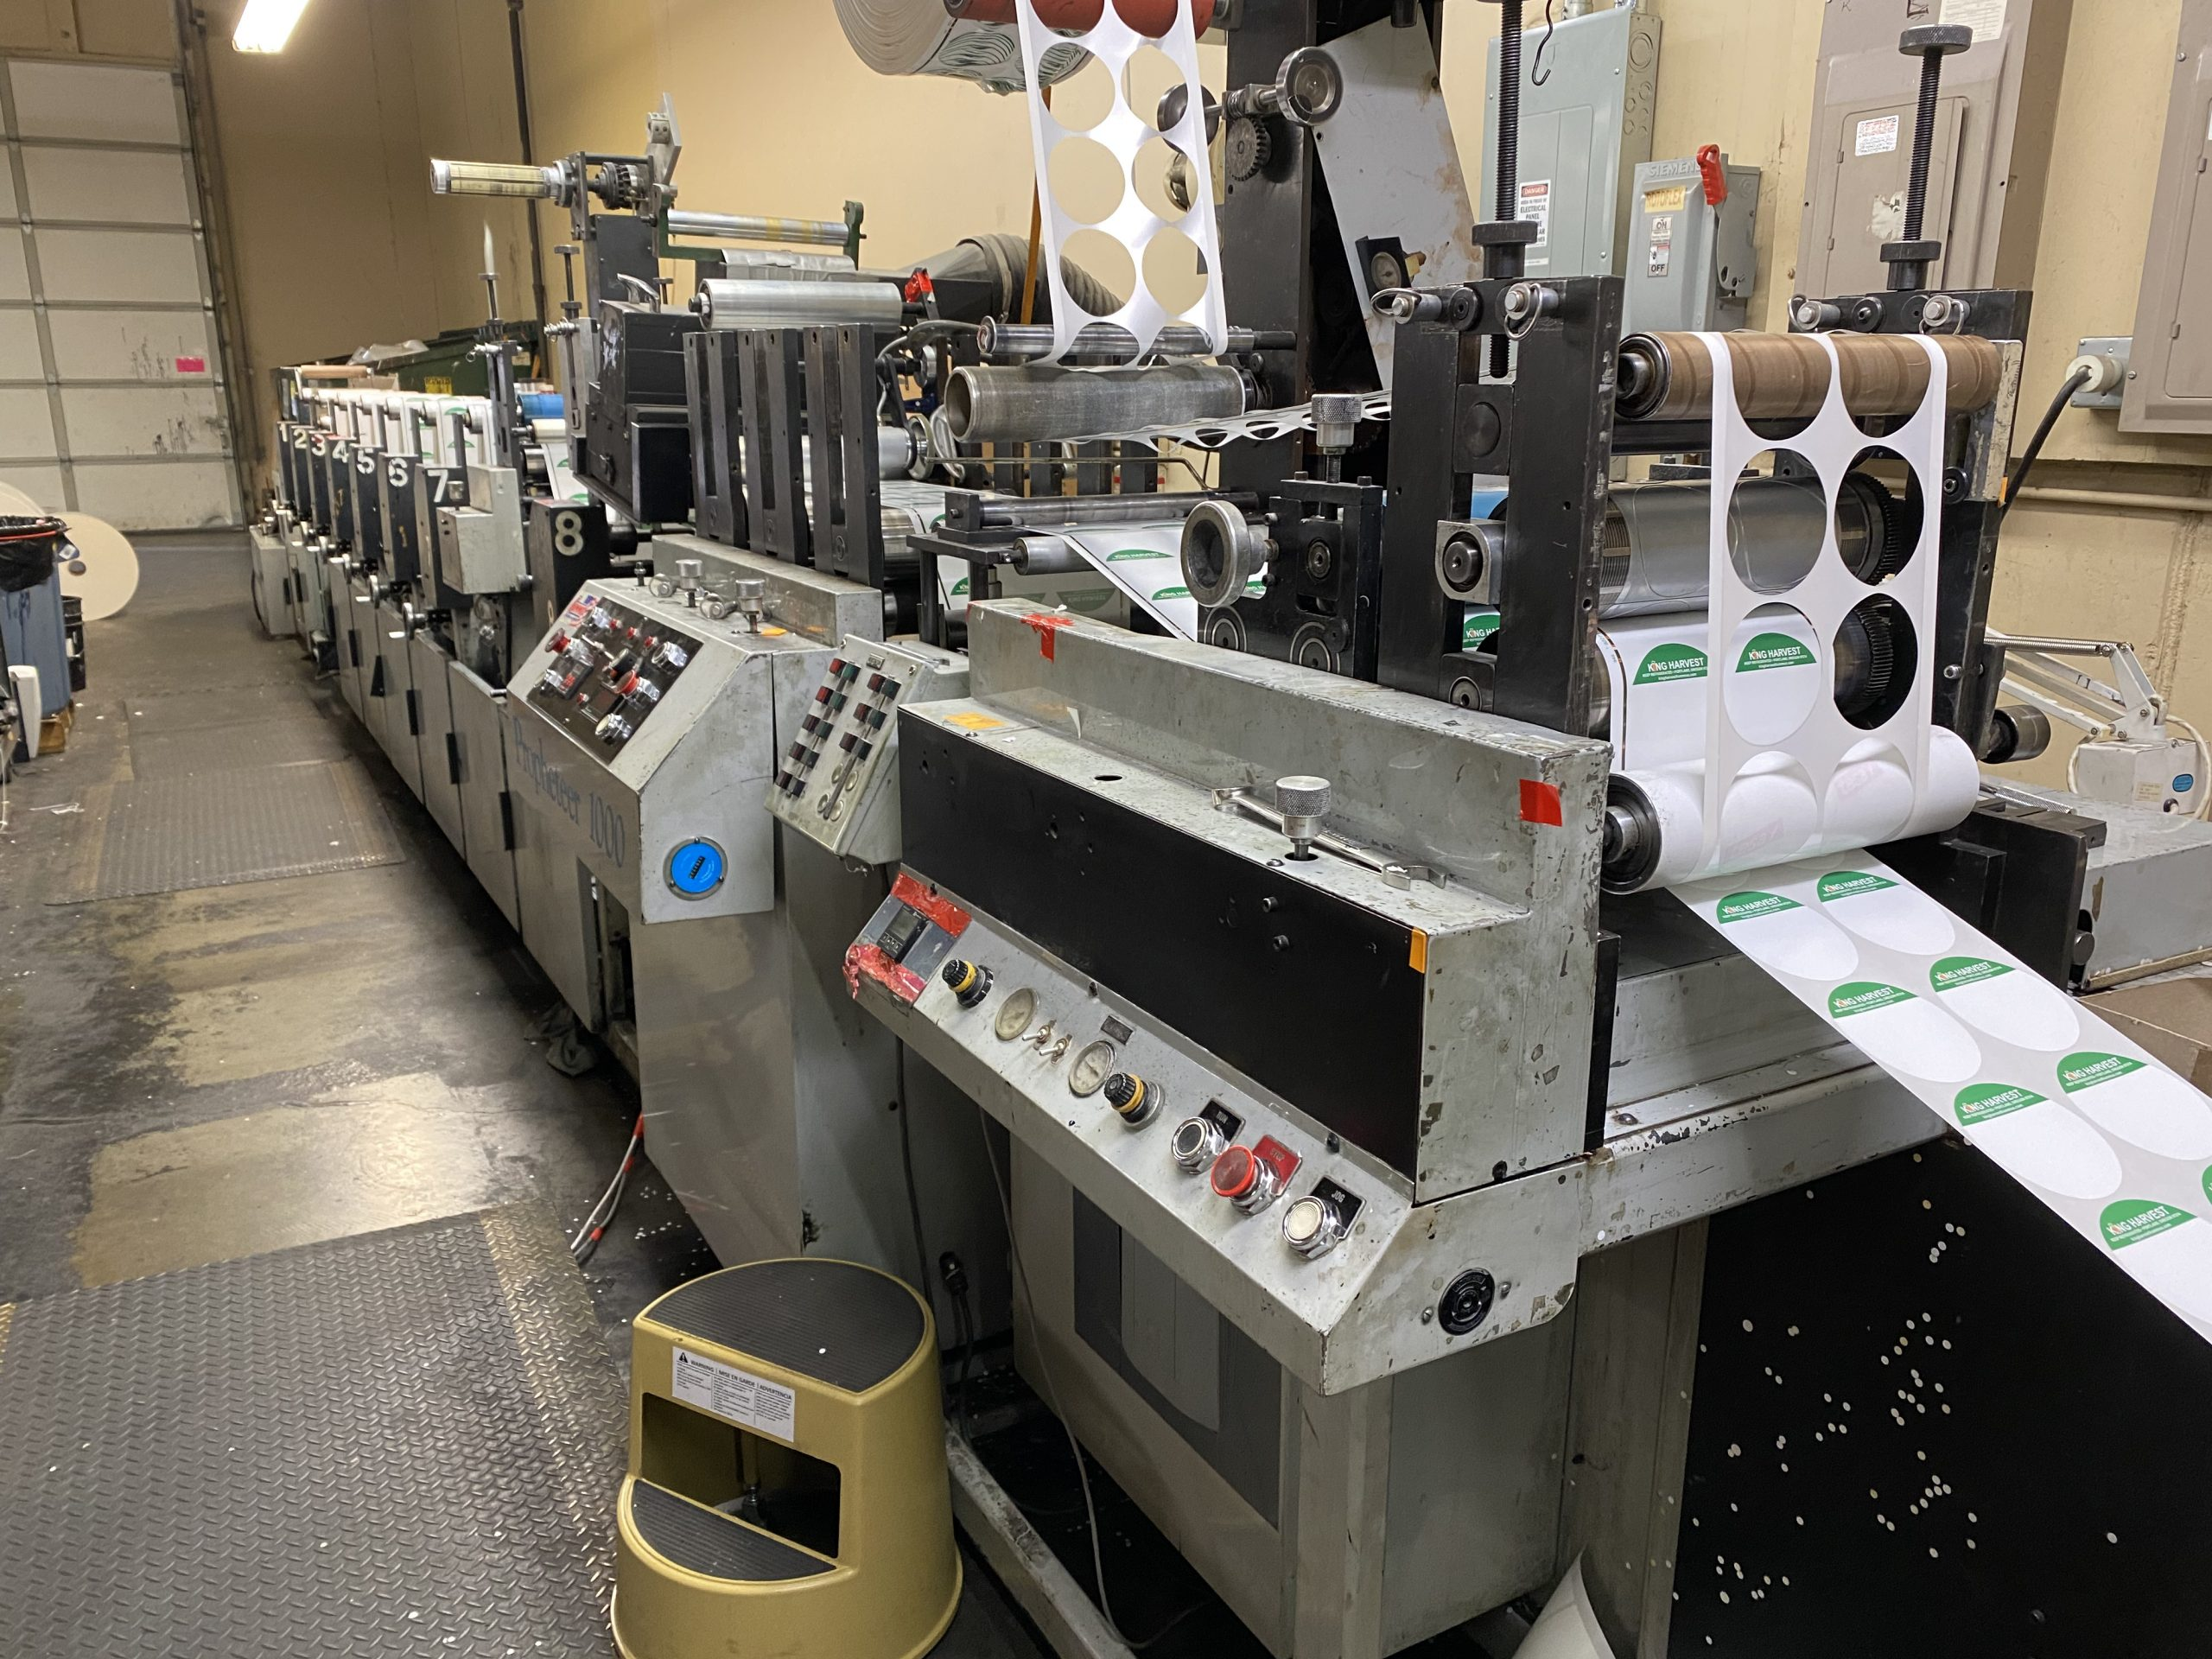 Propheteer 1000 - Used Flexo Printing Presses and Used Flexographic Equipment-2